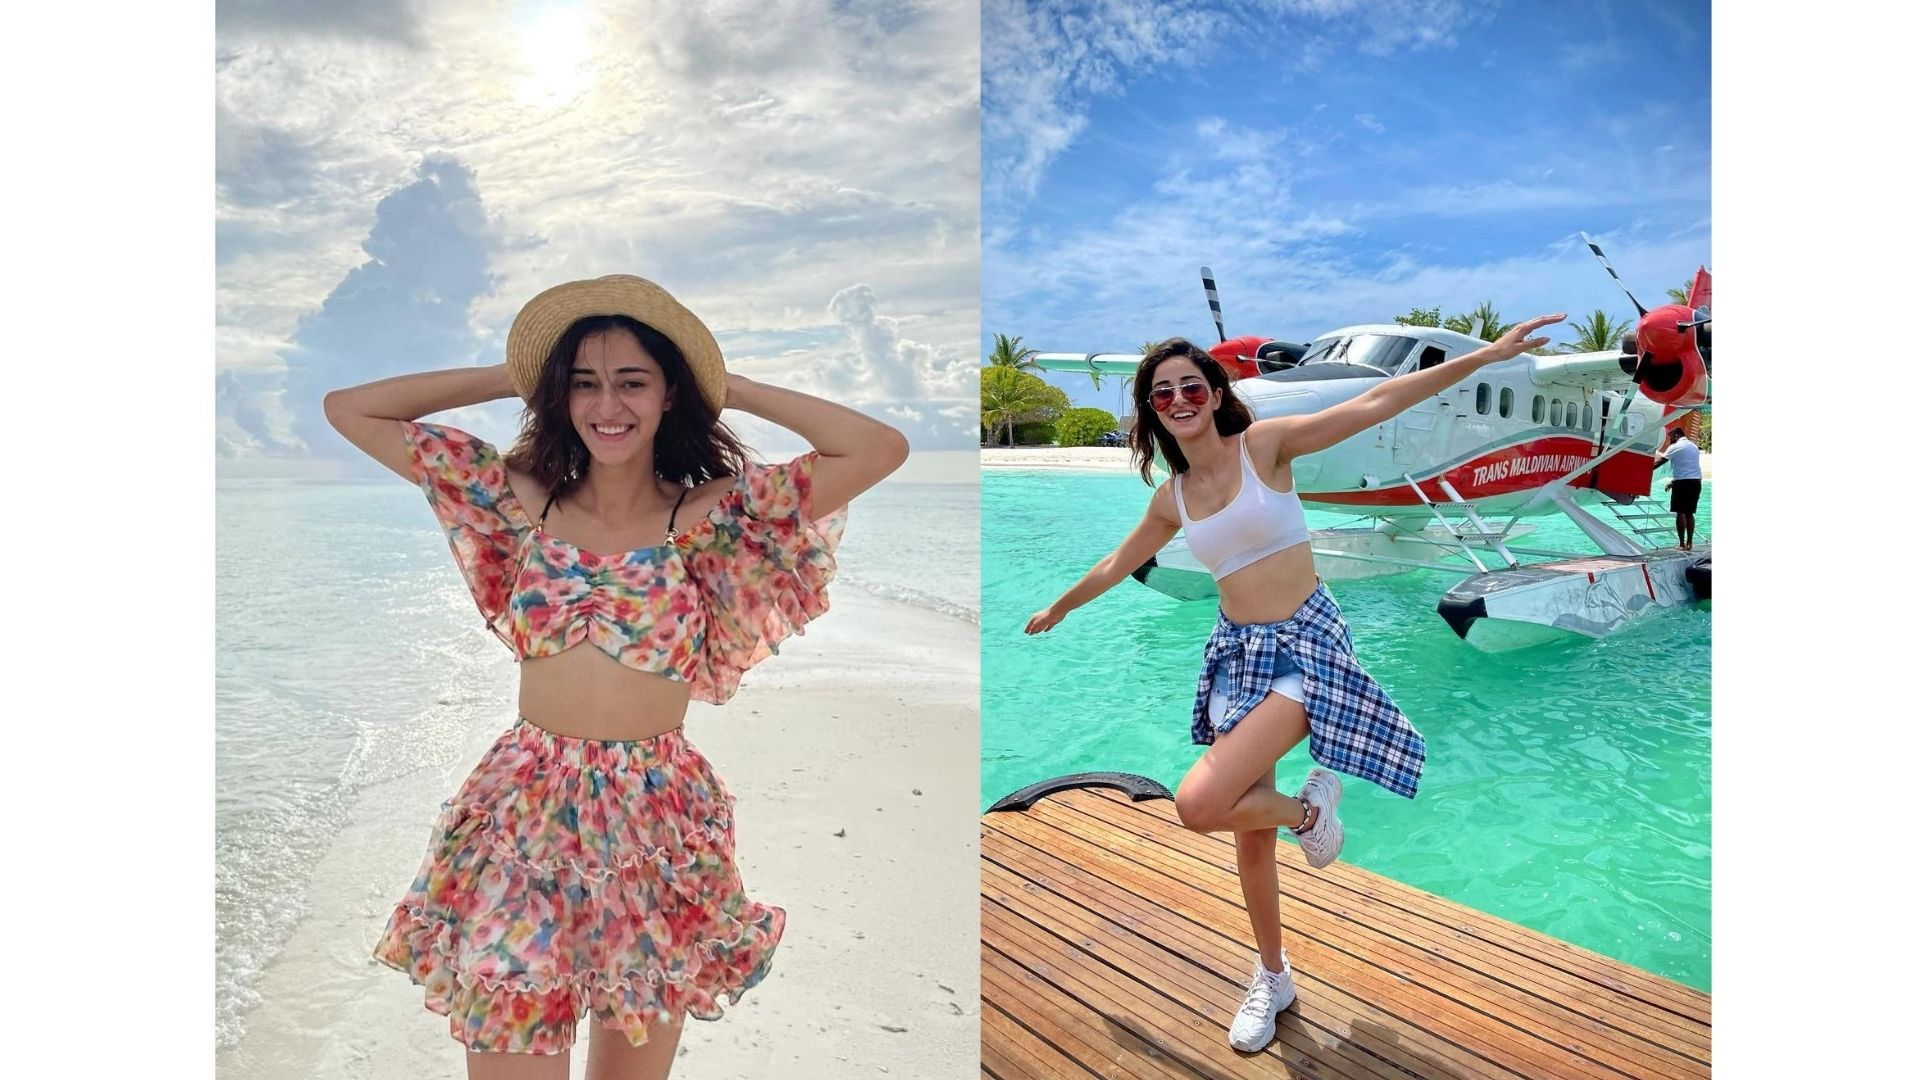 Ananya Panday Looks No Less Than A Mermaid In Her Underwater Video From Maldives; Stuns In White Bikini